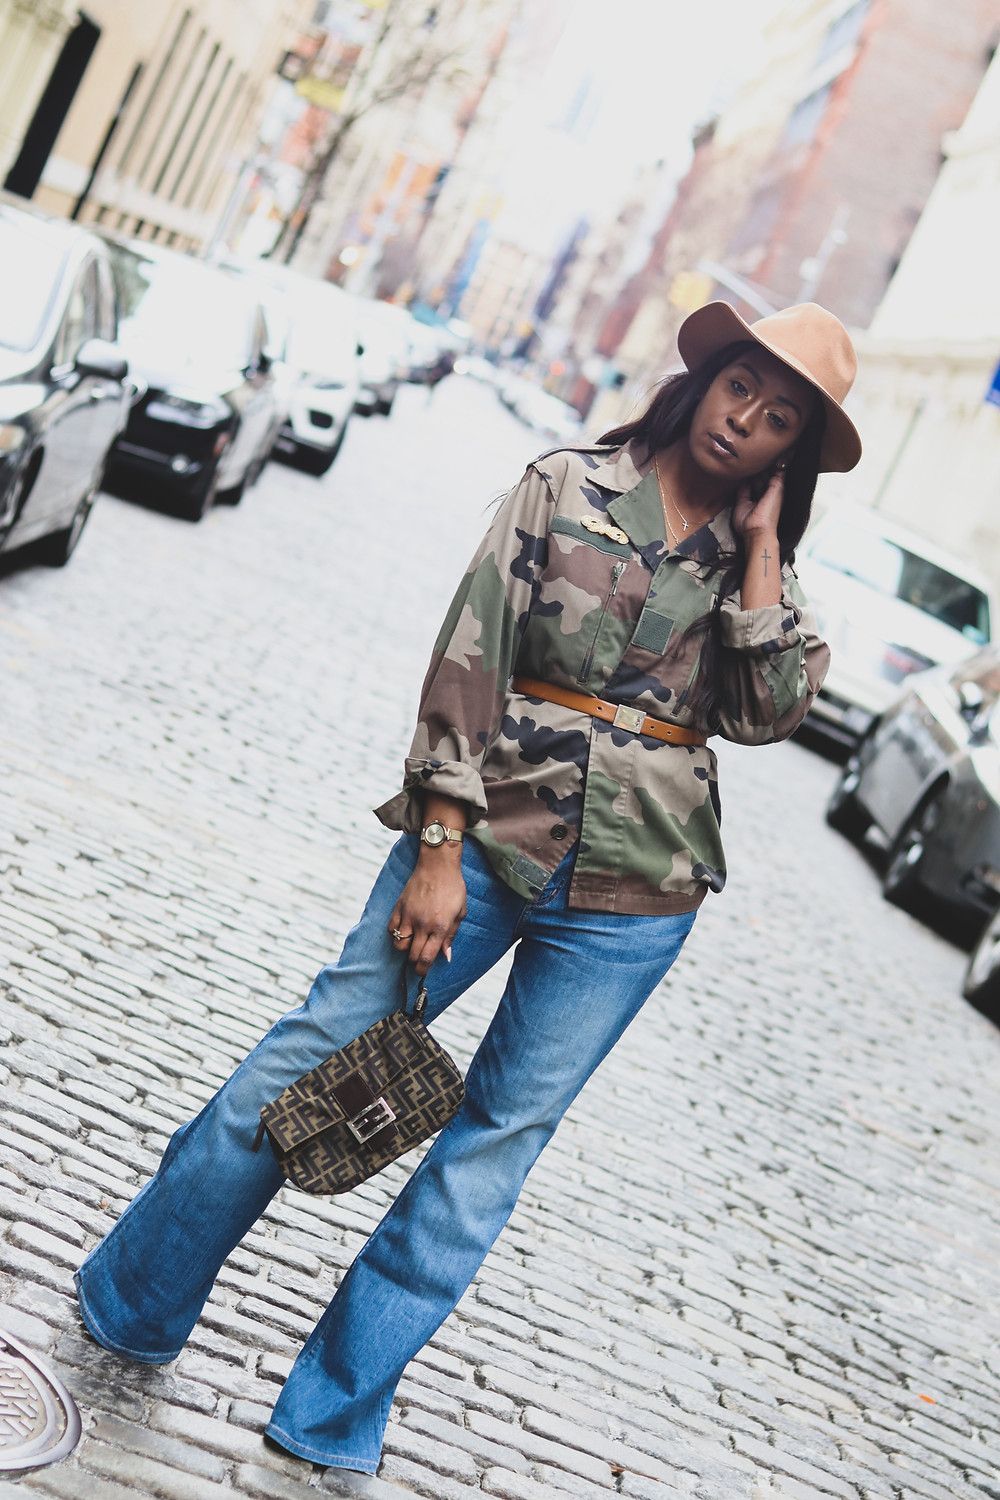 pre-loved fashion, camo jacket, flare denim, fendi bag, fedora,ysl beltpre-loved fashion, camo jacket, flare denim, fendi bag, fedora,ysl beltFendi zuuca baguette (The Real Real), Christian Dior brooch (The real real), YSL belt ,soho ,nyc, fashion, fashion photography.